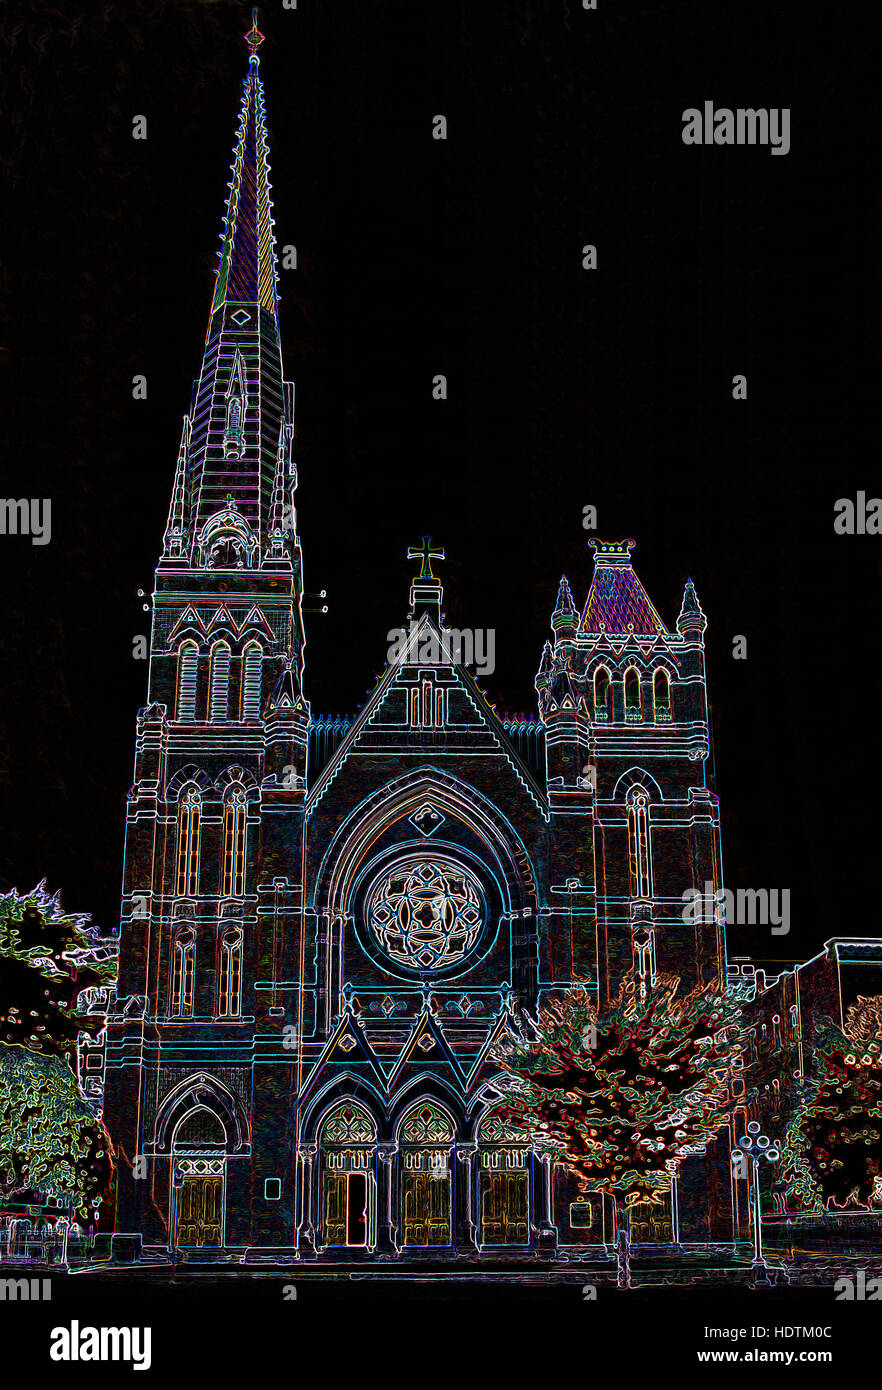 Victorian Gothic Style Church - Digitally Manipulated Image with Glowing Edges, Abstract Architecture on a Black - Stock Image